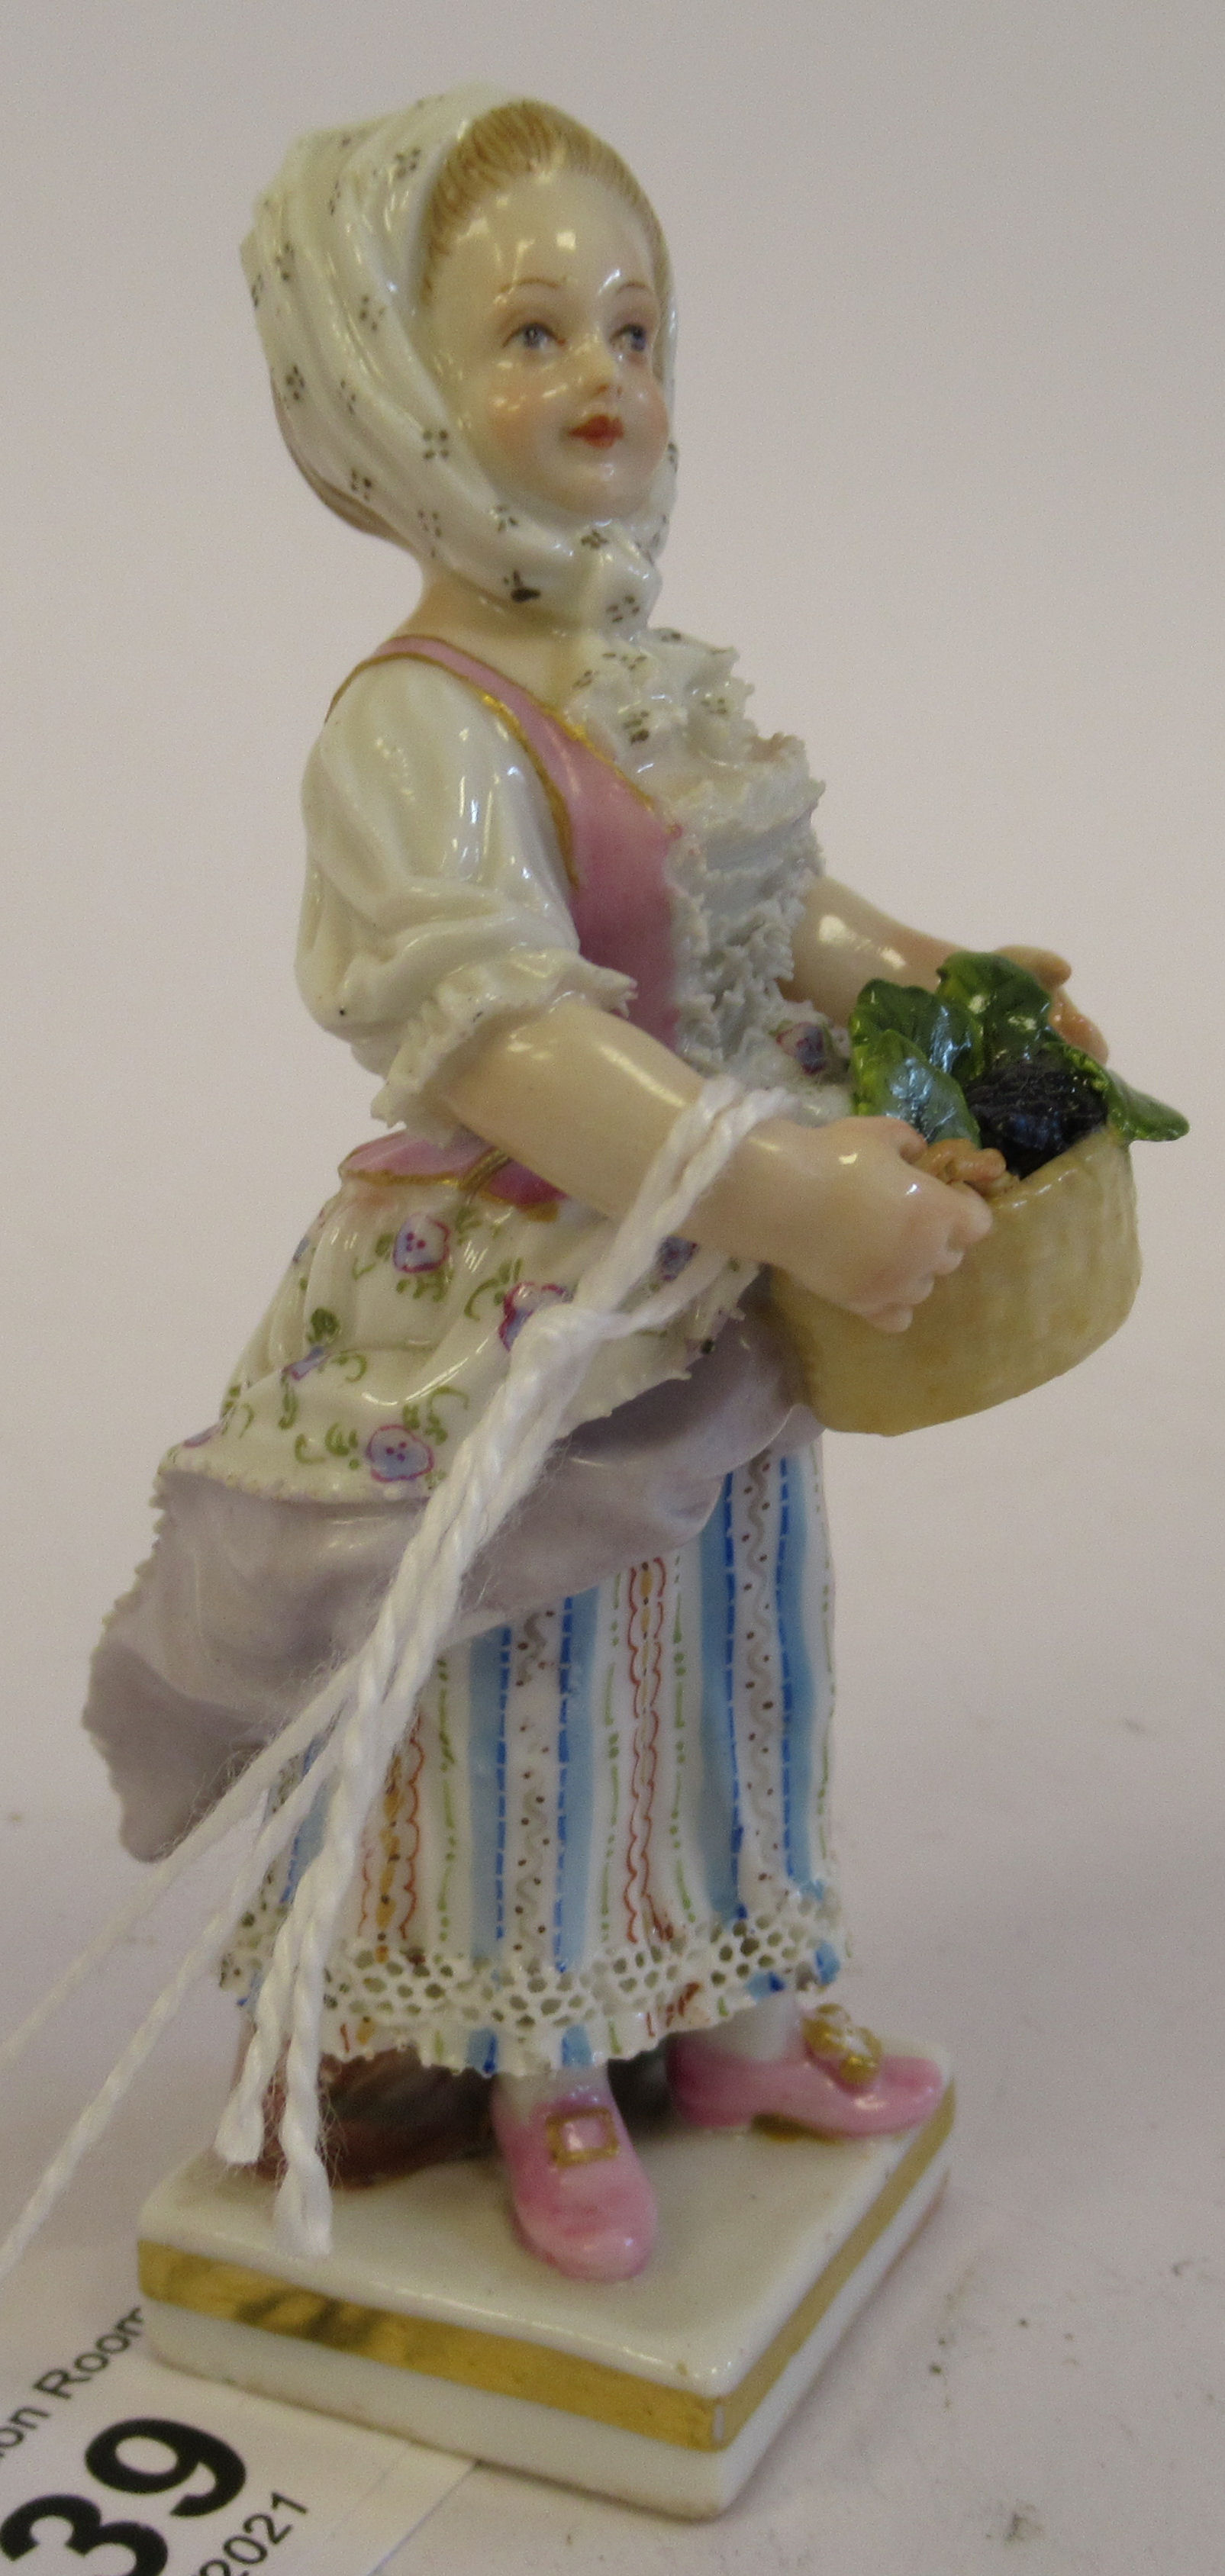 A 19th/20thC Meissen porcelain figure, a girl wearing a floral skirt, carrying a basket of grapes, - Image 2 of 7